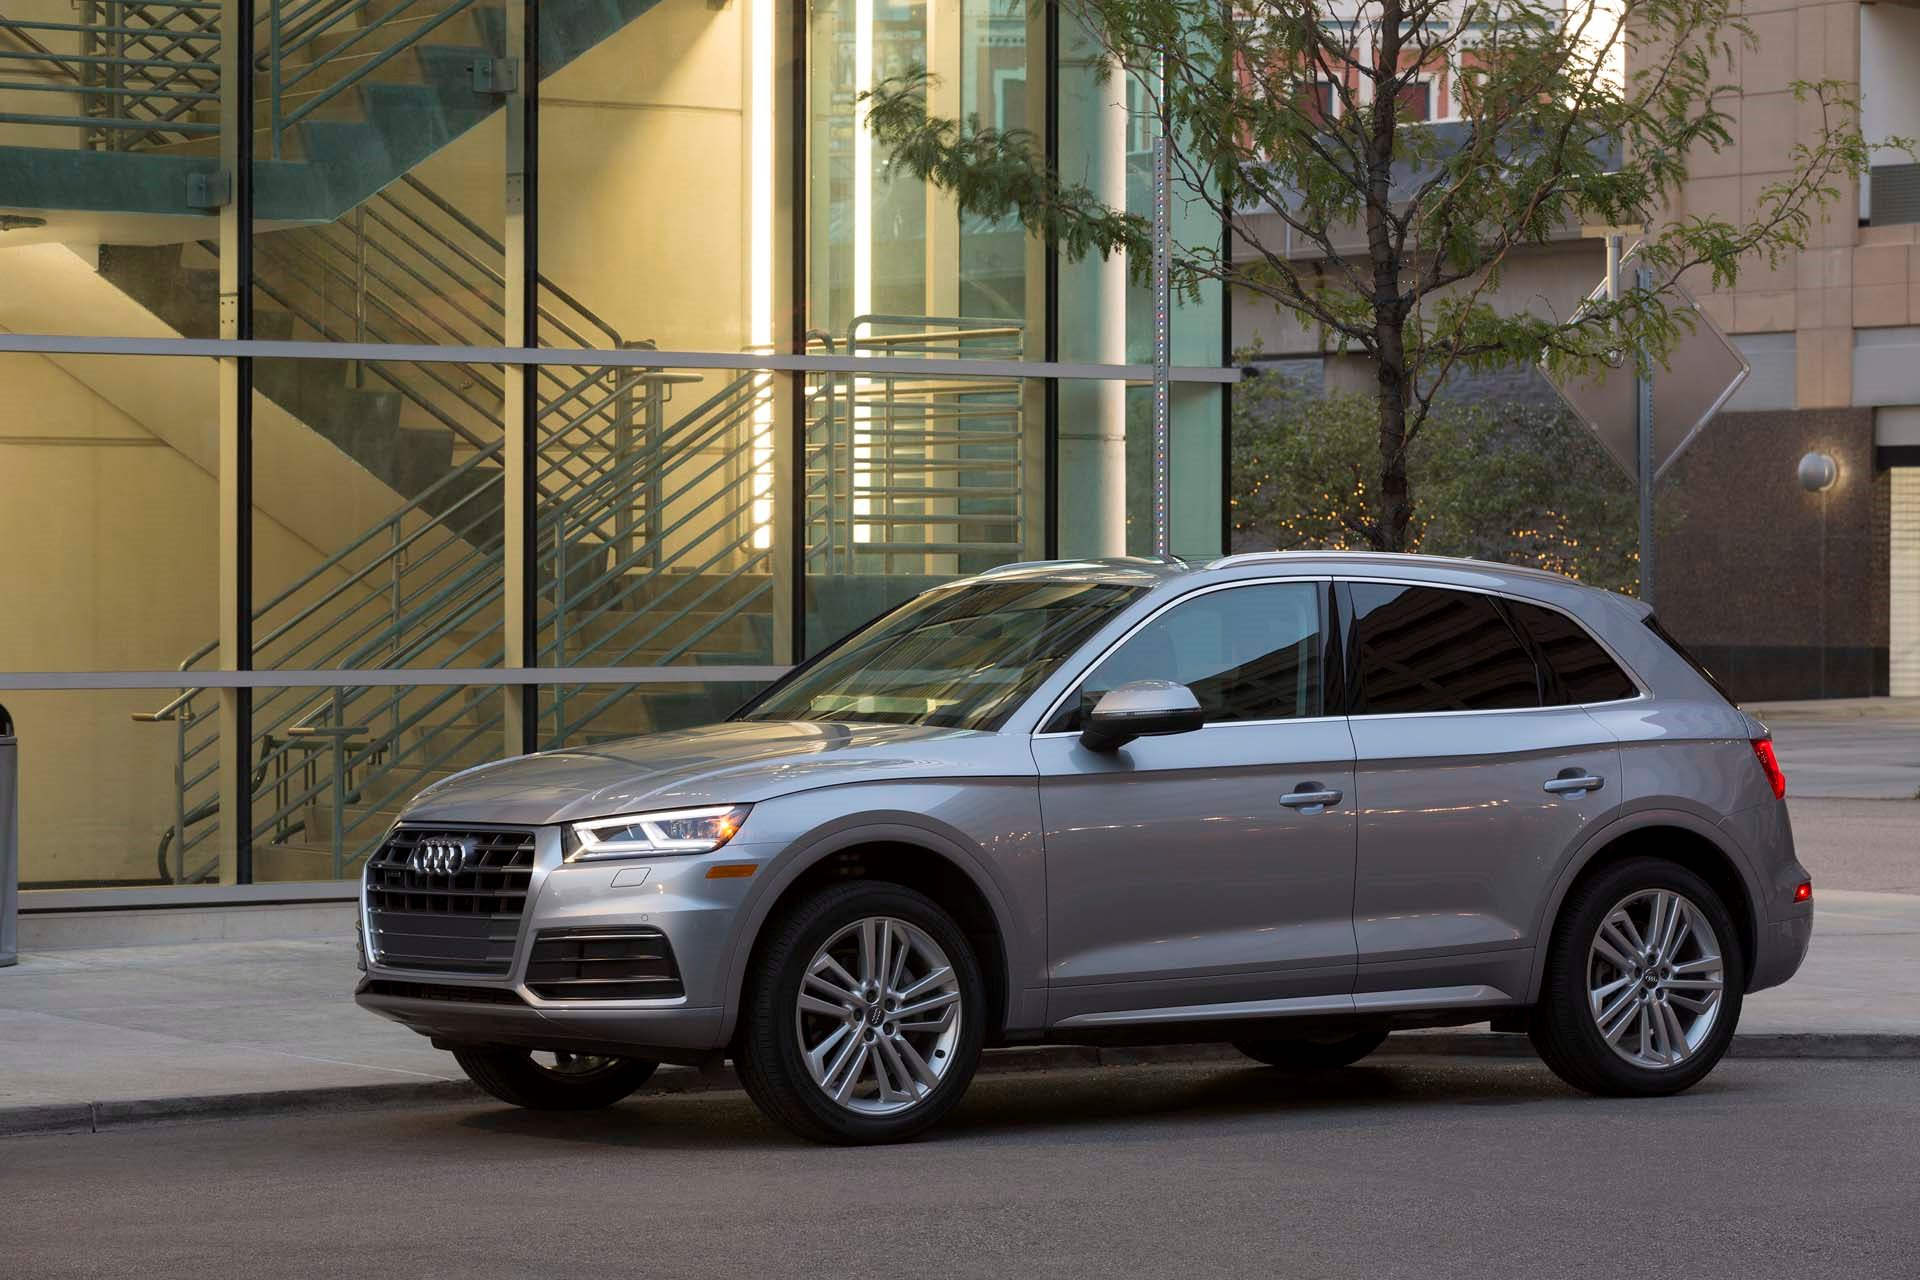 New 2020 Audi Q5 2.0T quattro Premium 2.0T quattro Premium for sale $42,950 at M and V Leasing in Brooklyn NY 11223 1